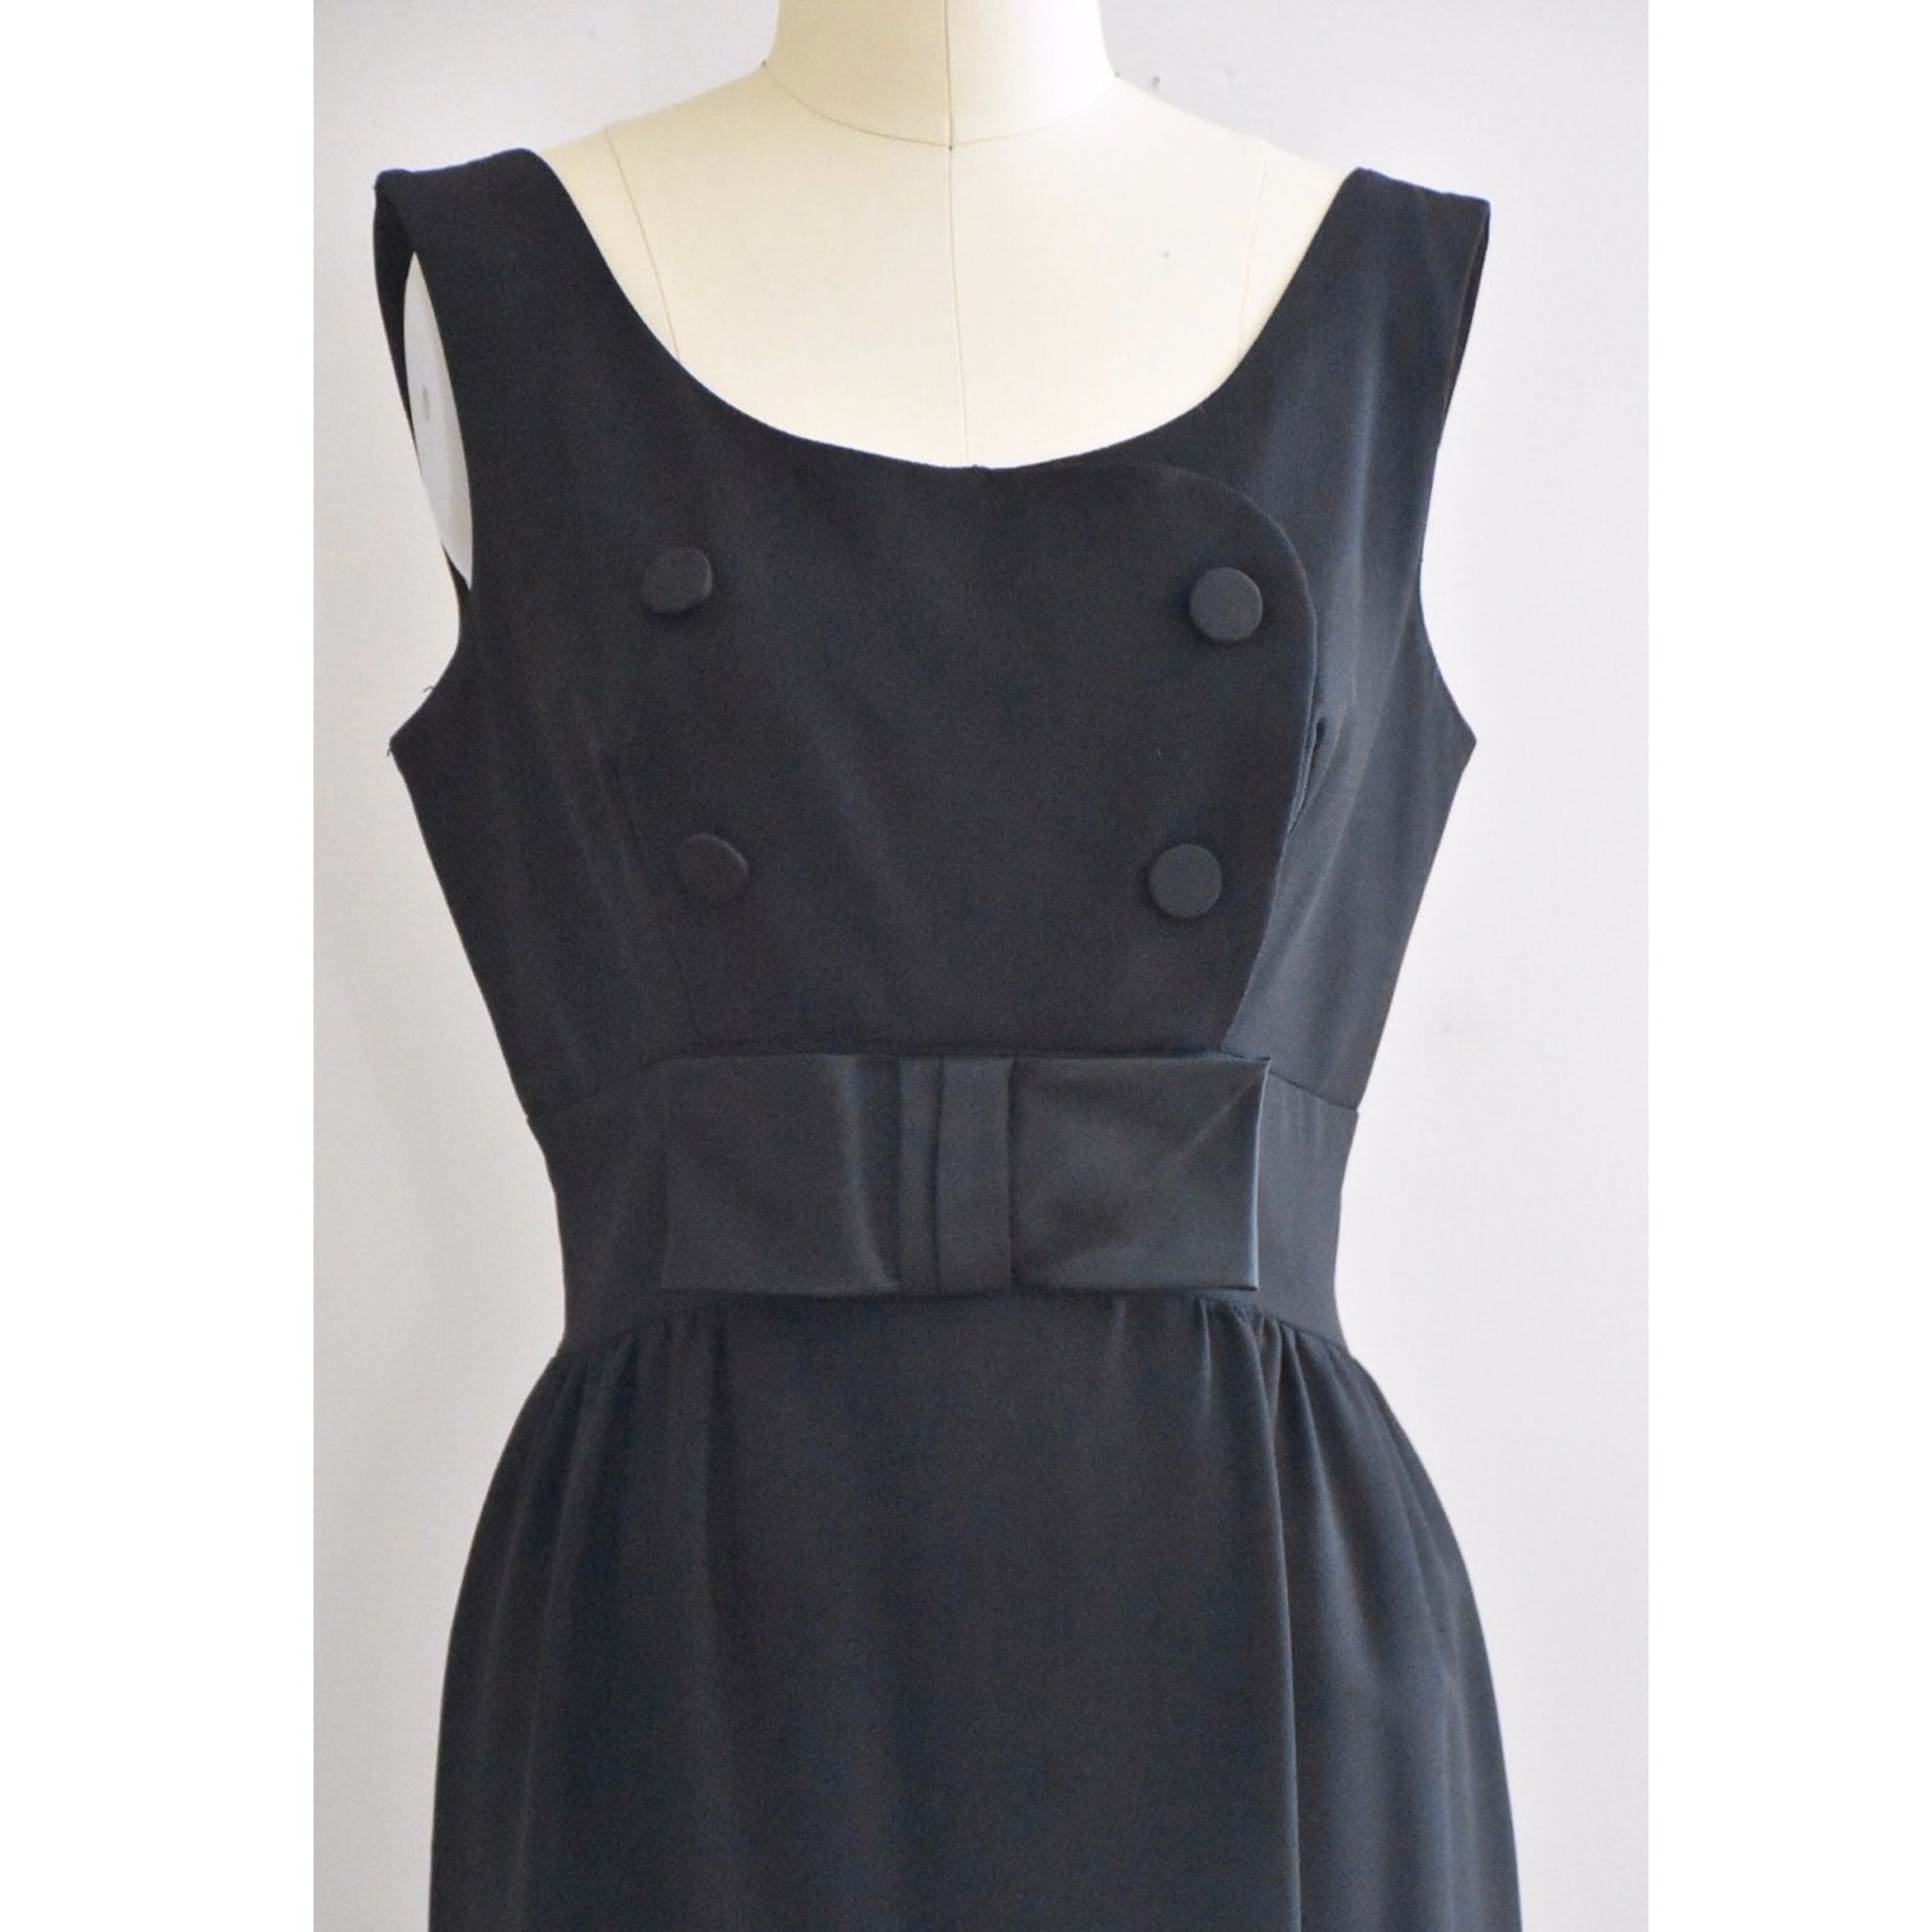 SOLD // 60s Vintage Formal Dress